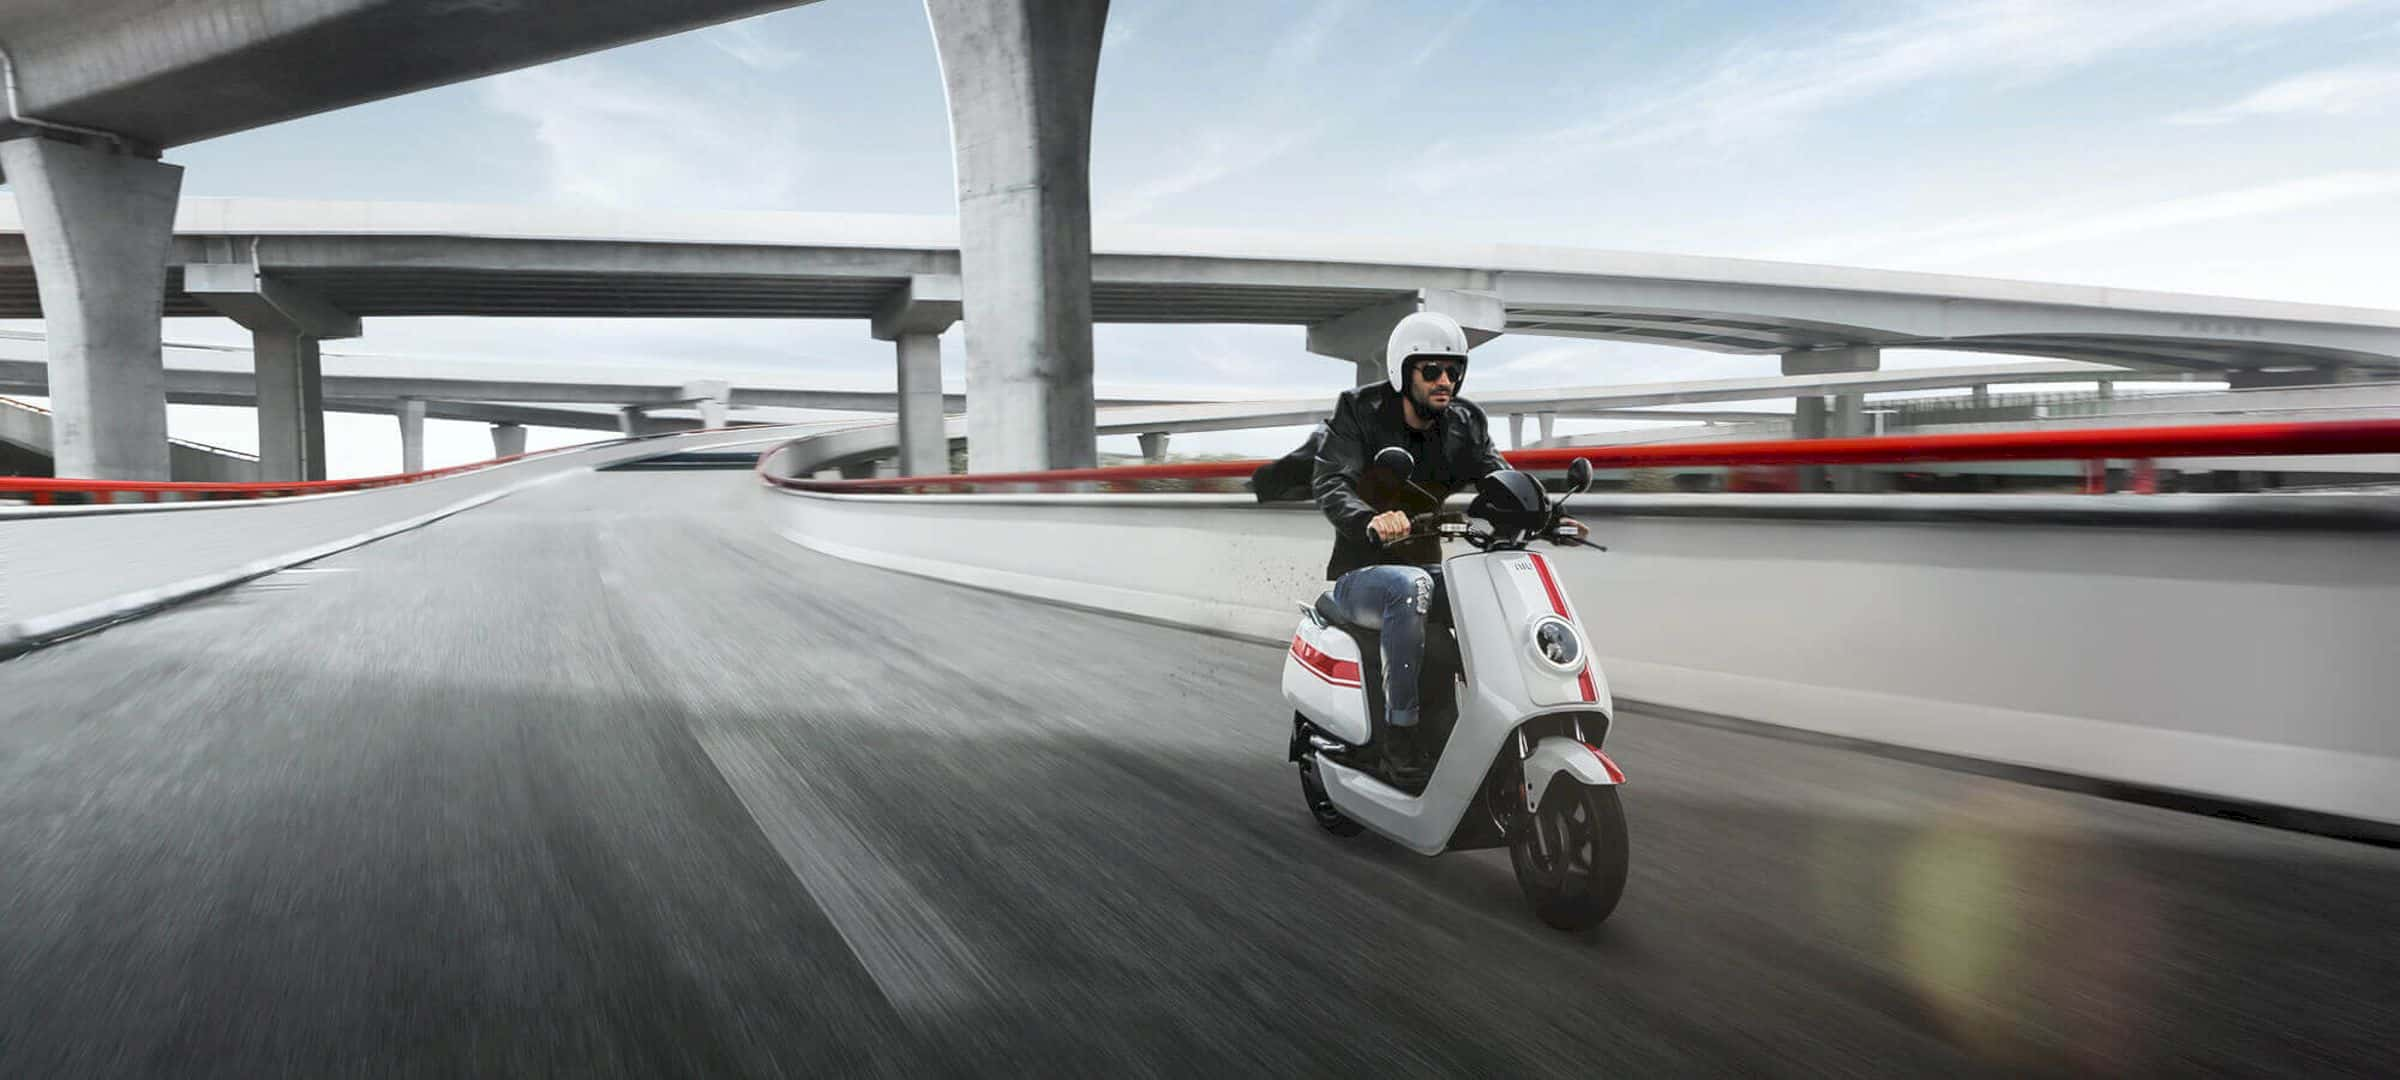 NIU Electric Scooter NQi GT 3